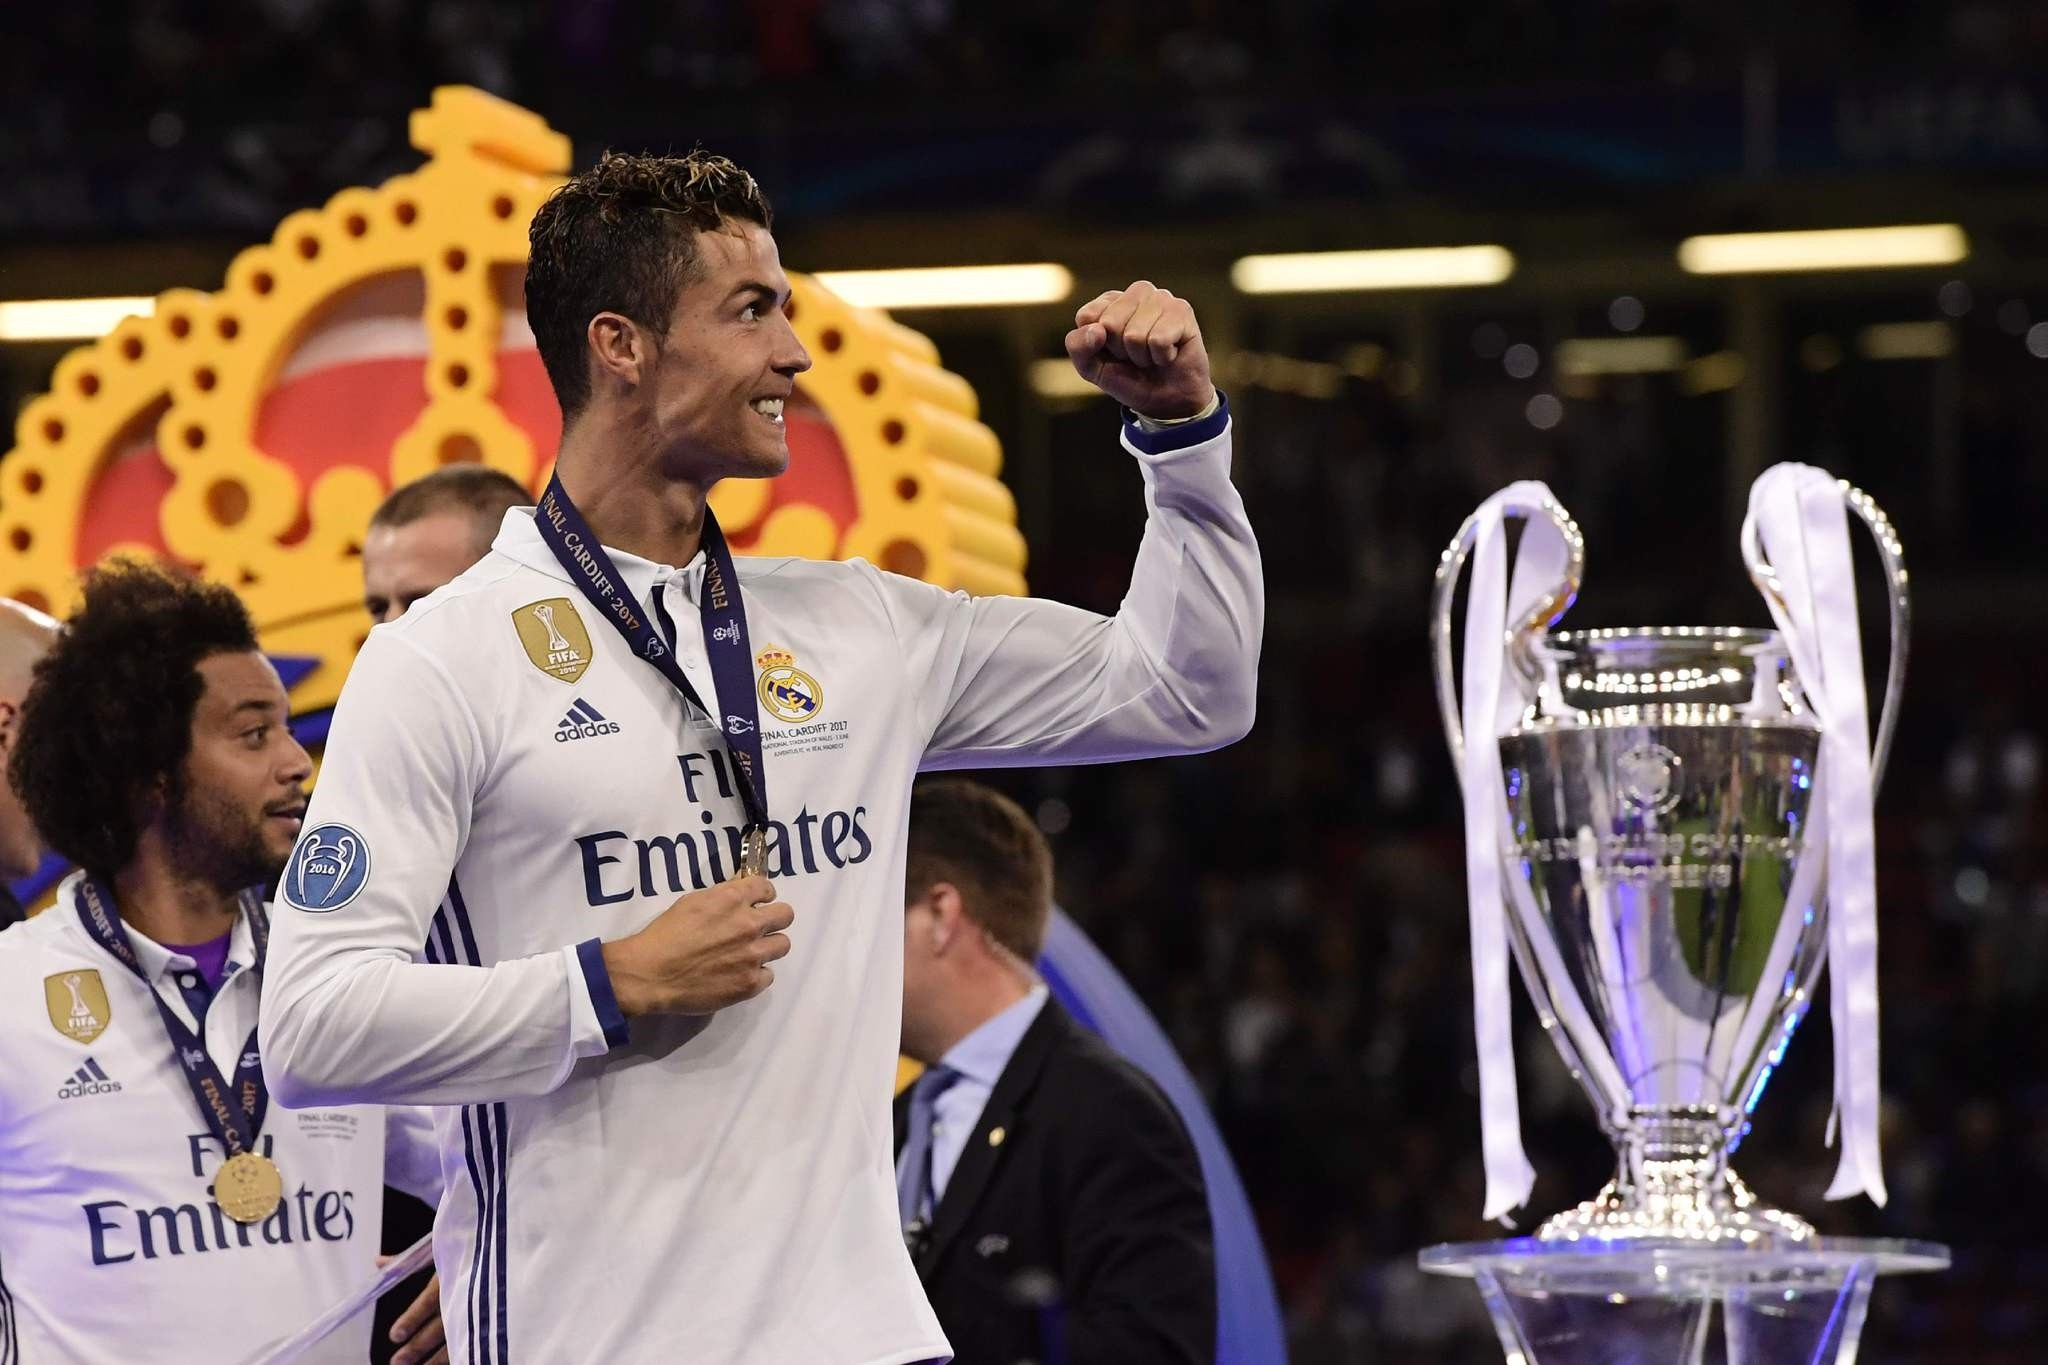 Ronaldo celebrates next to the trophy after Real Madrid won the UEFA Champions League final in Cardiff.